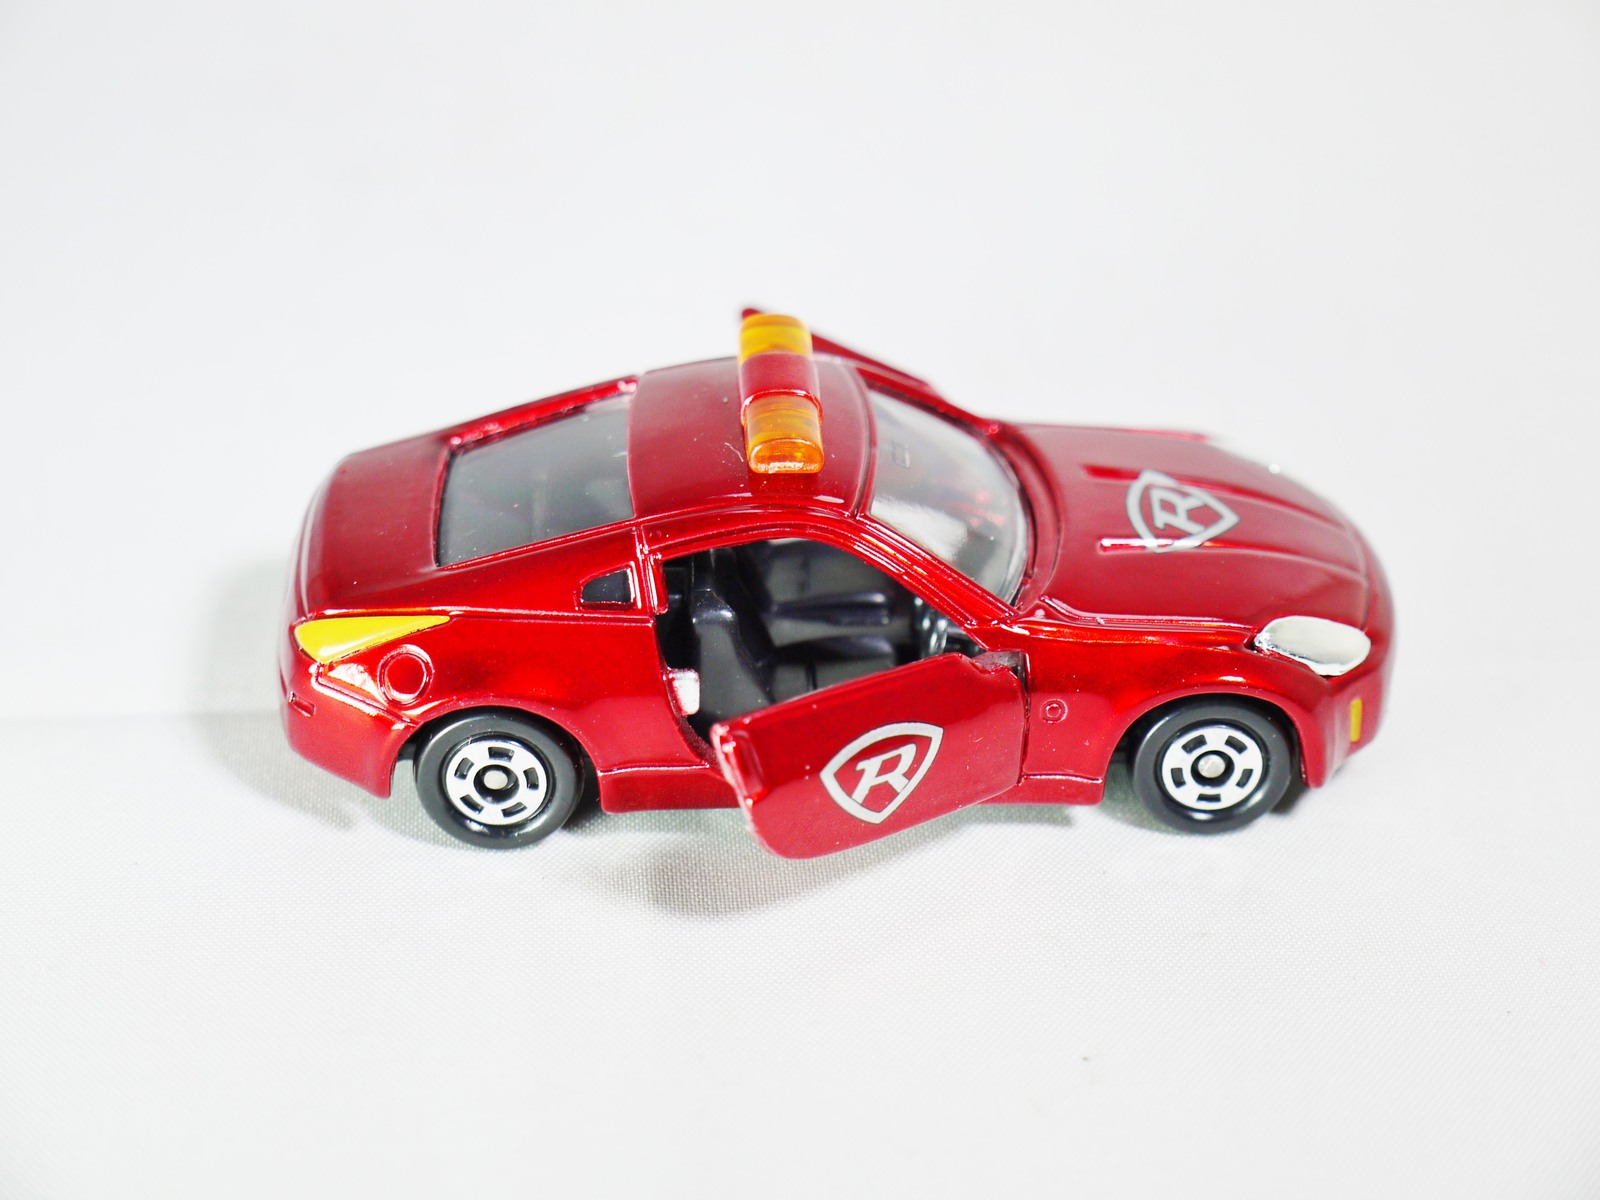 Takara Tomy Tomica Hero Rescue Force Ds And 50 Similar Items Diecast Truck No77 Hino Profia Original Benefits Core Striker Max Fire Version